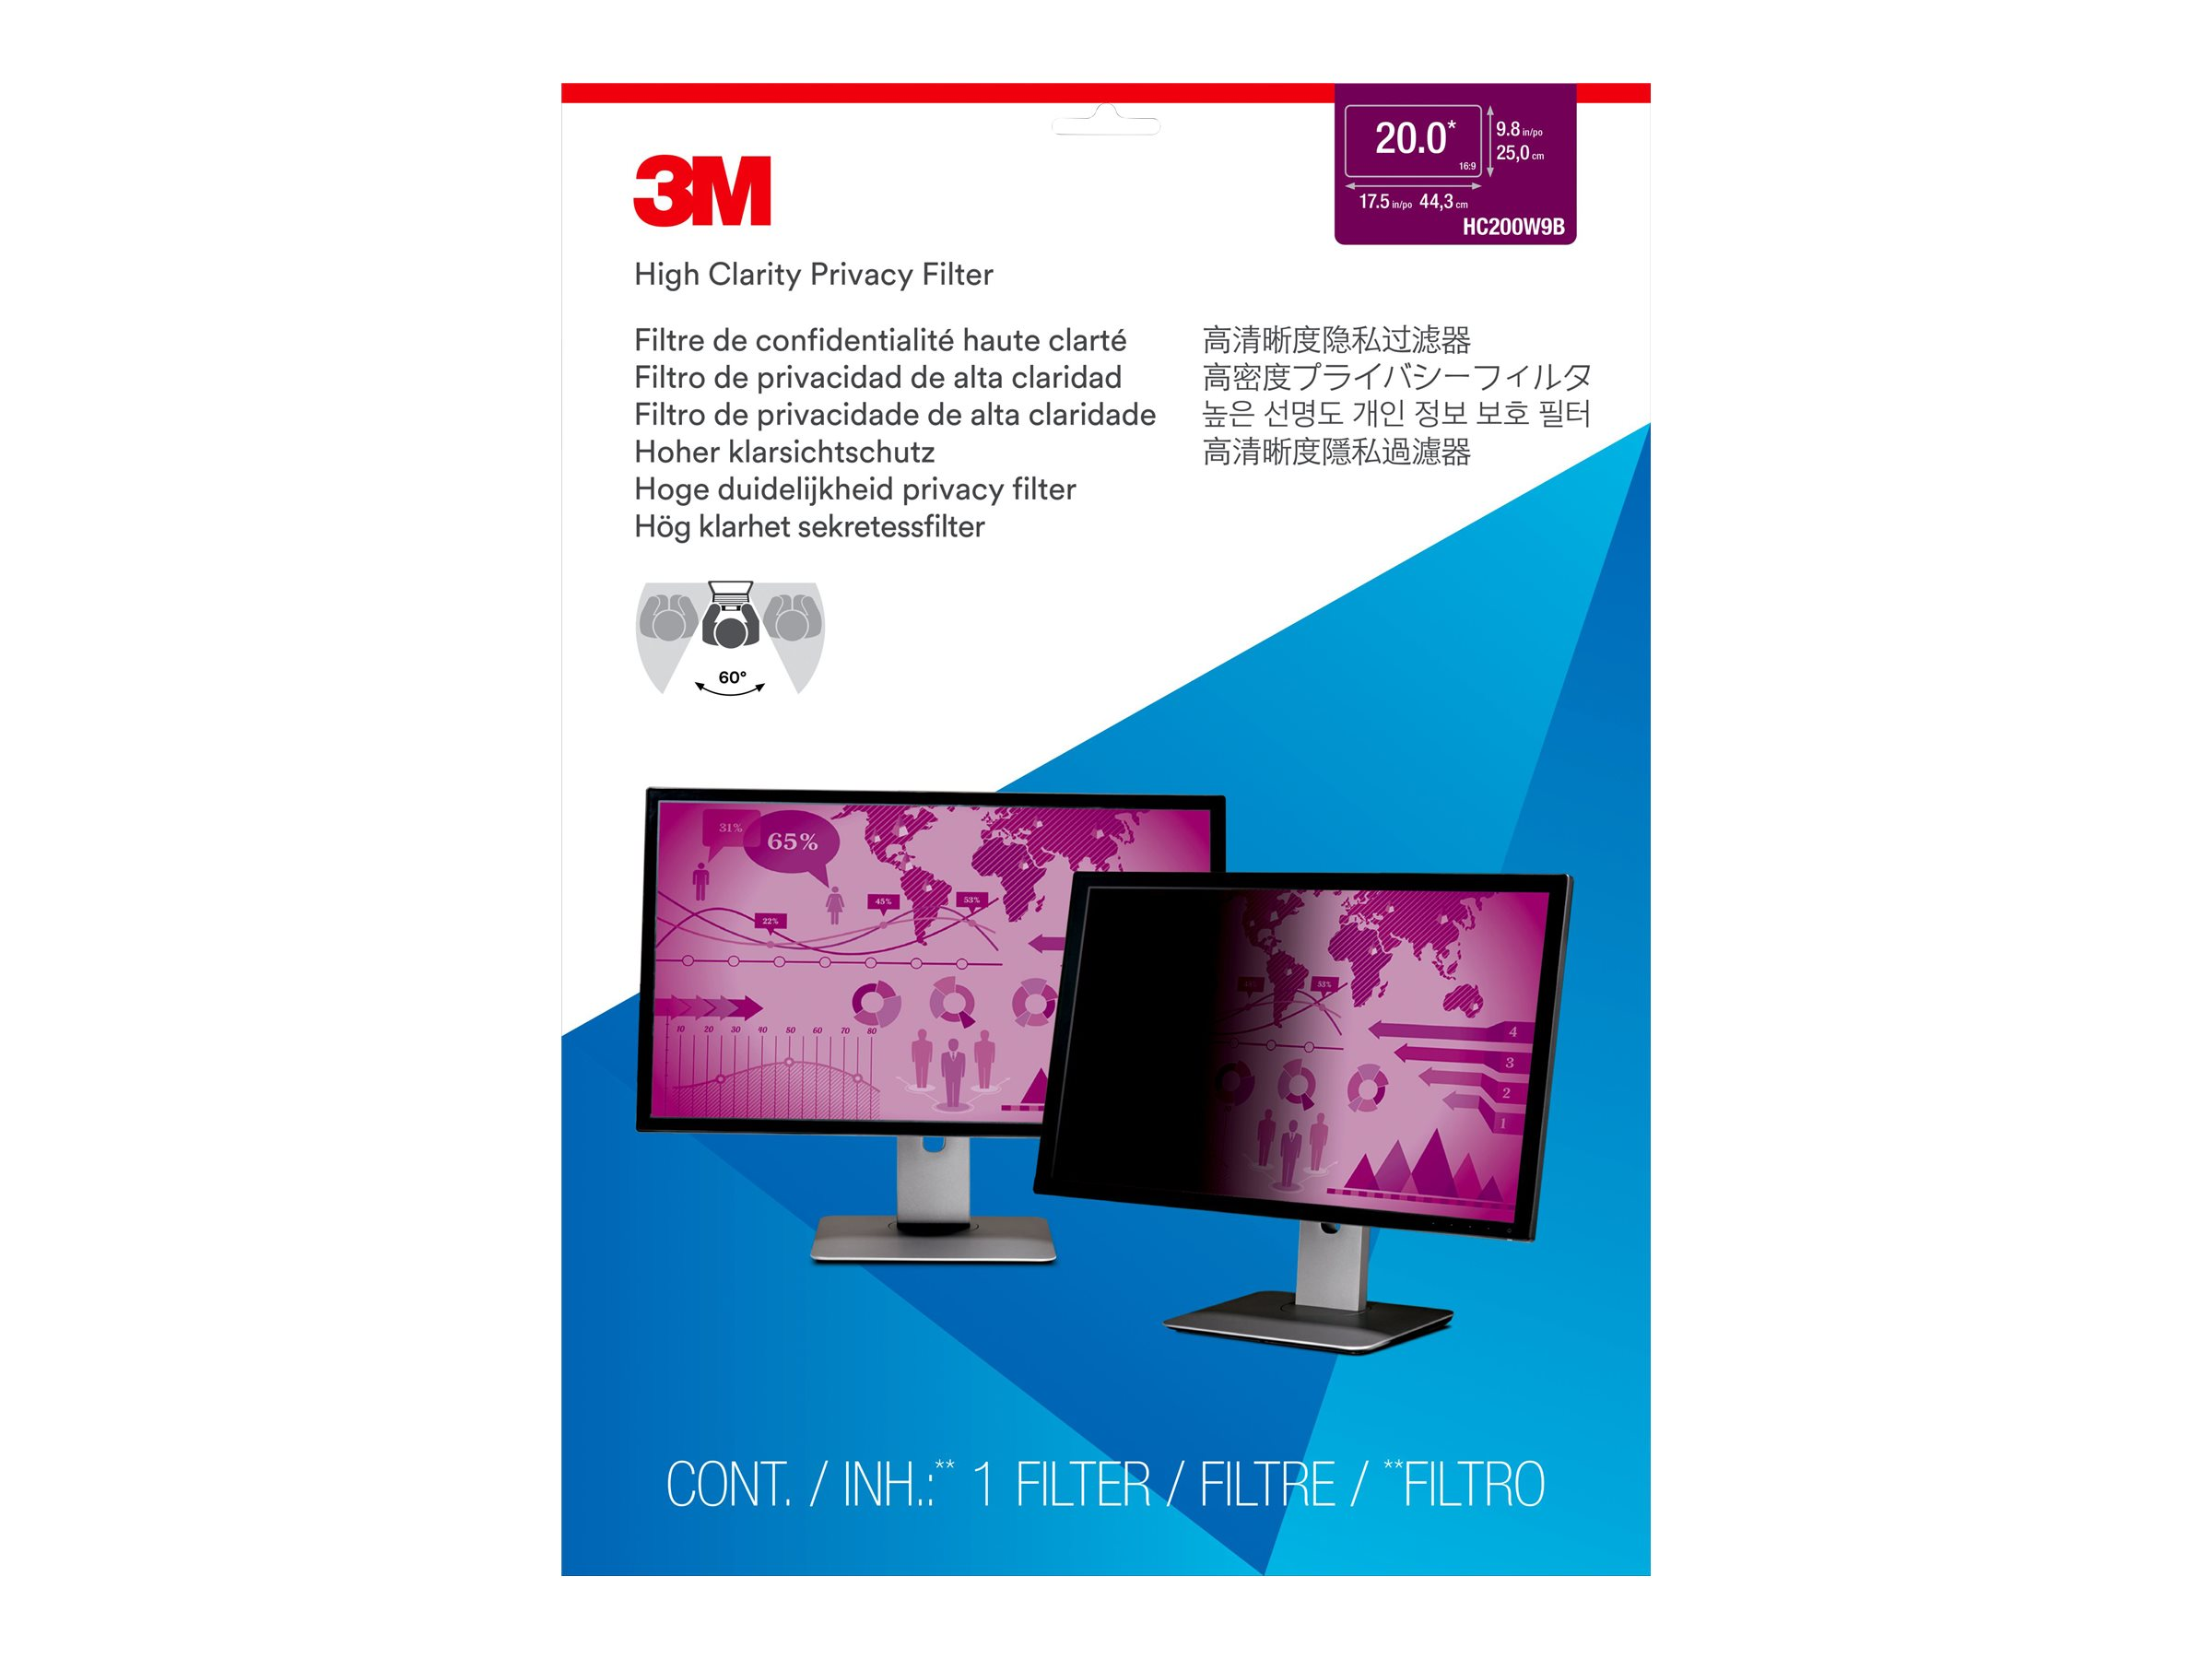 3M High Clarity Privacy Filter for 20